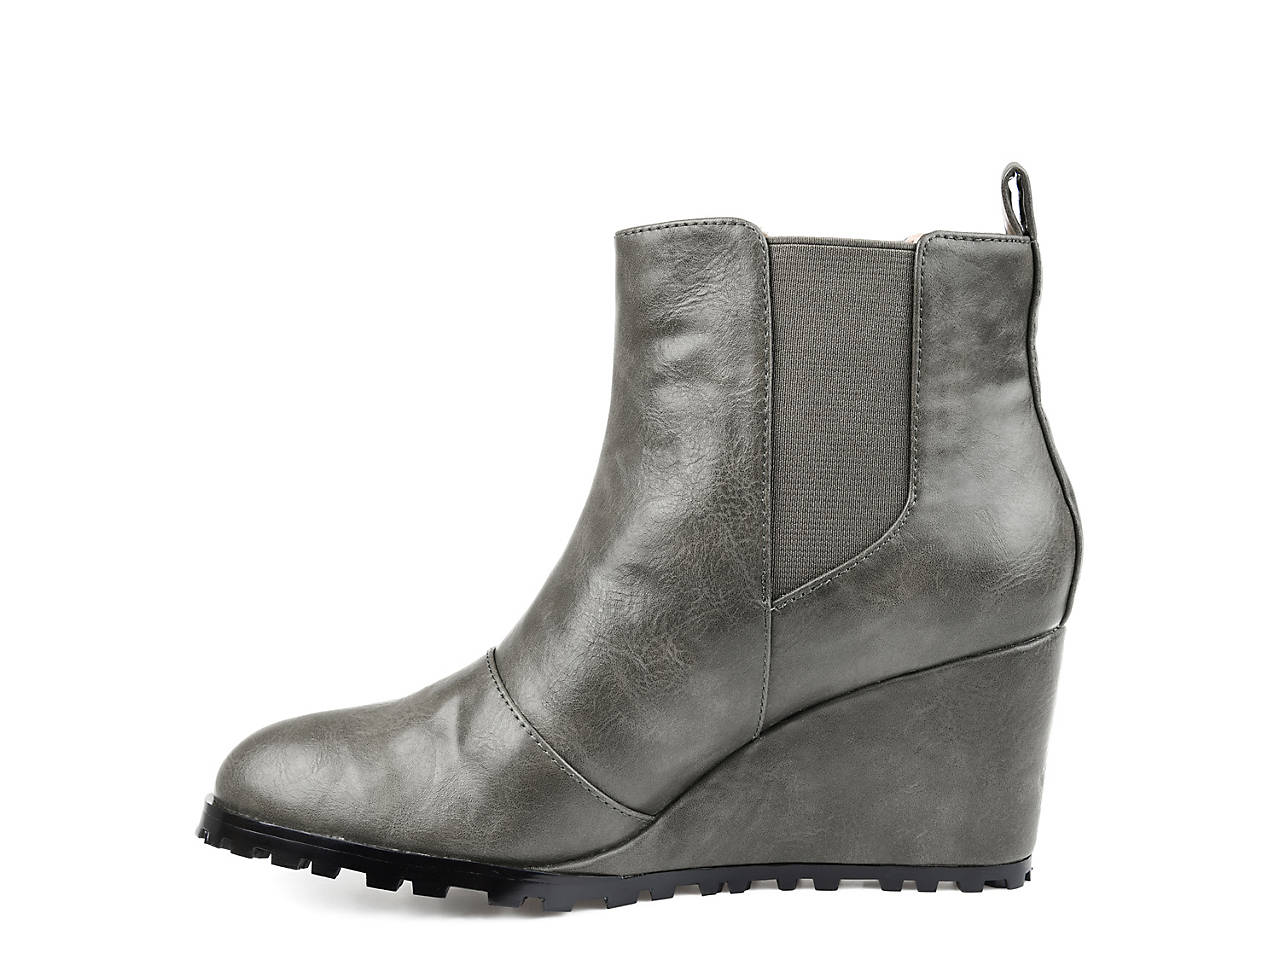 005d9f4ef202 Journee Collection Jessie Wedge Chelsea Boot Women s Shoes